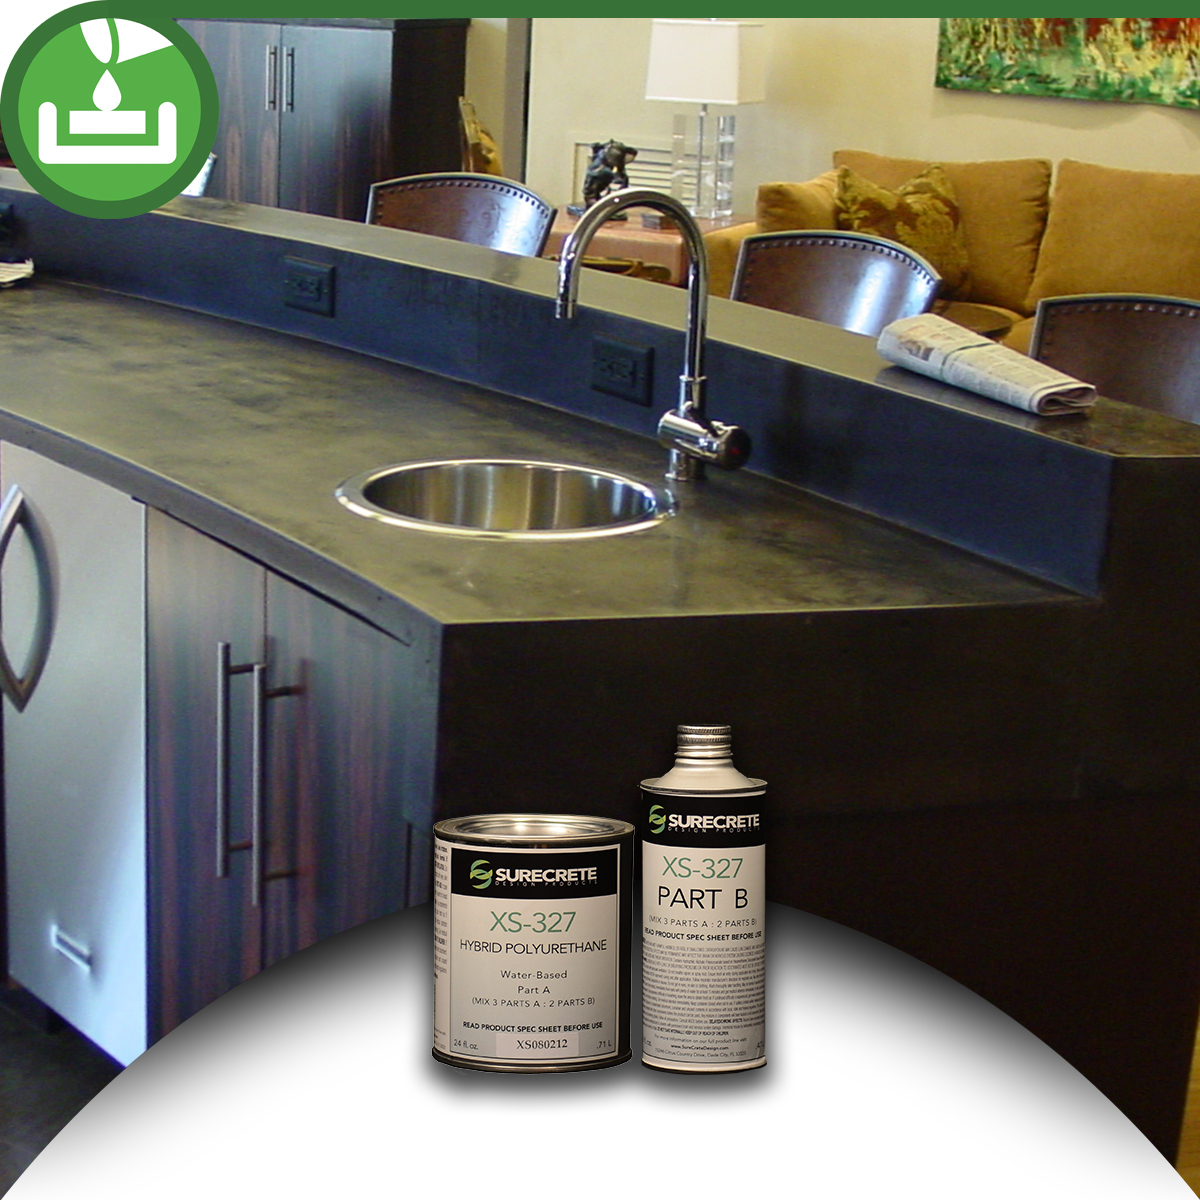 Concrete Countertop Sealers Xs 327 Concrete Countertop Sealer Bdc Supply Company